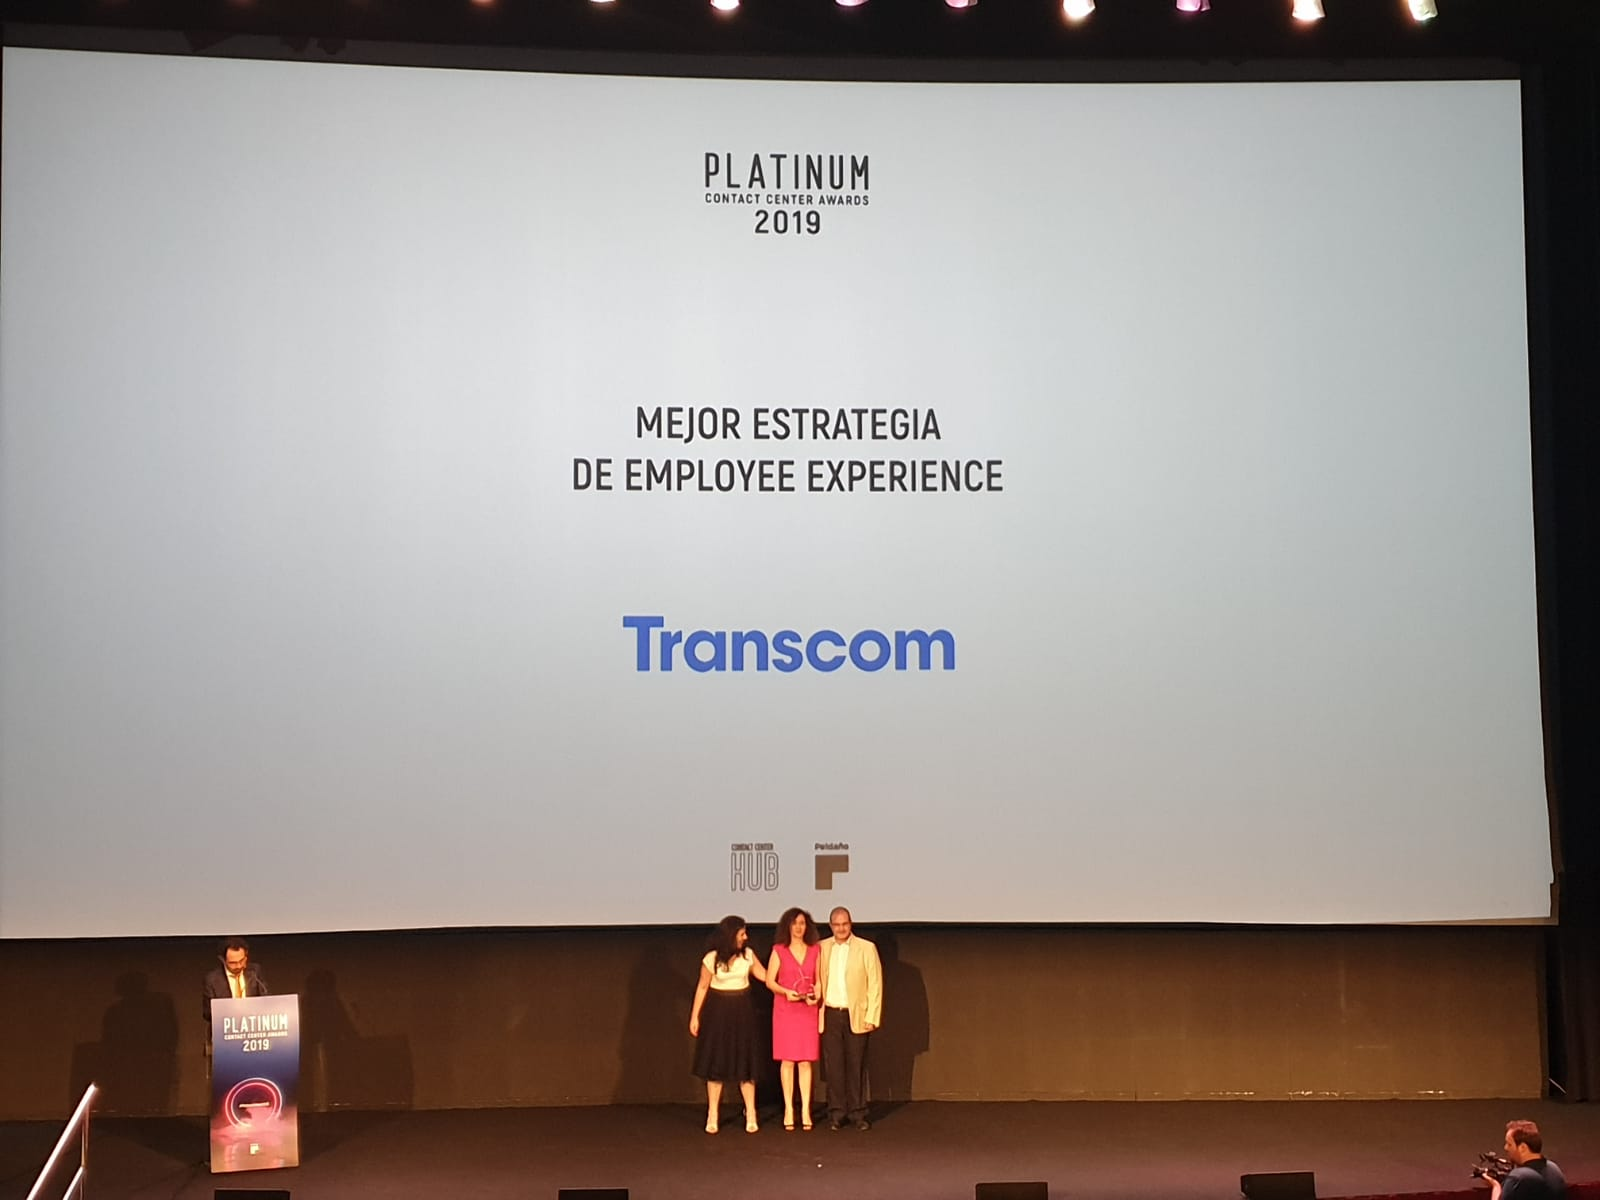 Transcom Spain wins the Platinum Contact Center Award 2019 for the Best Employee Experience